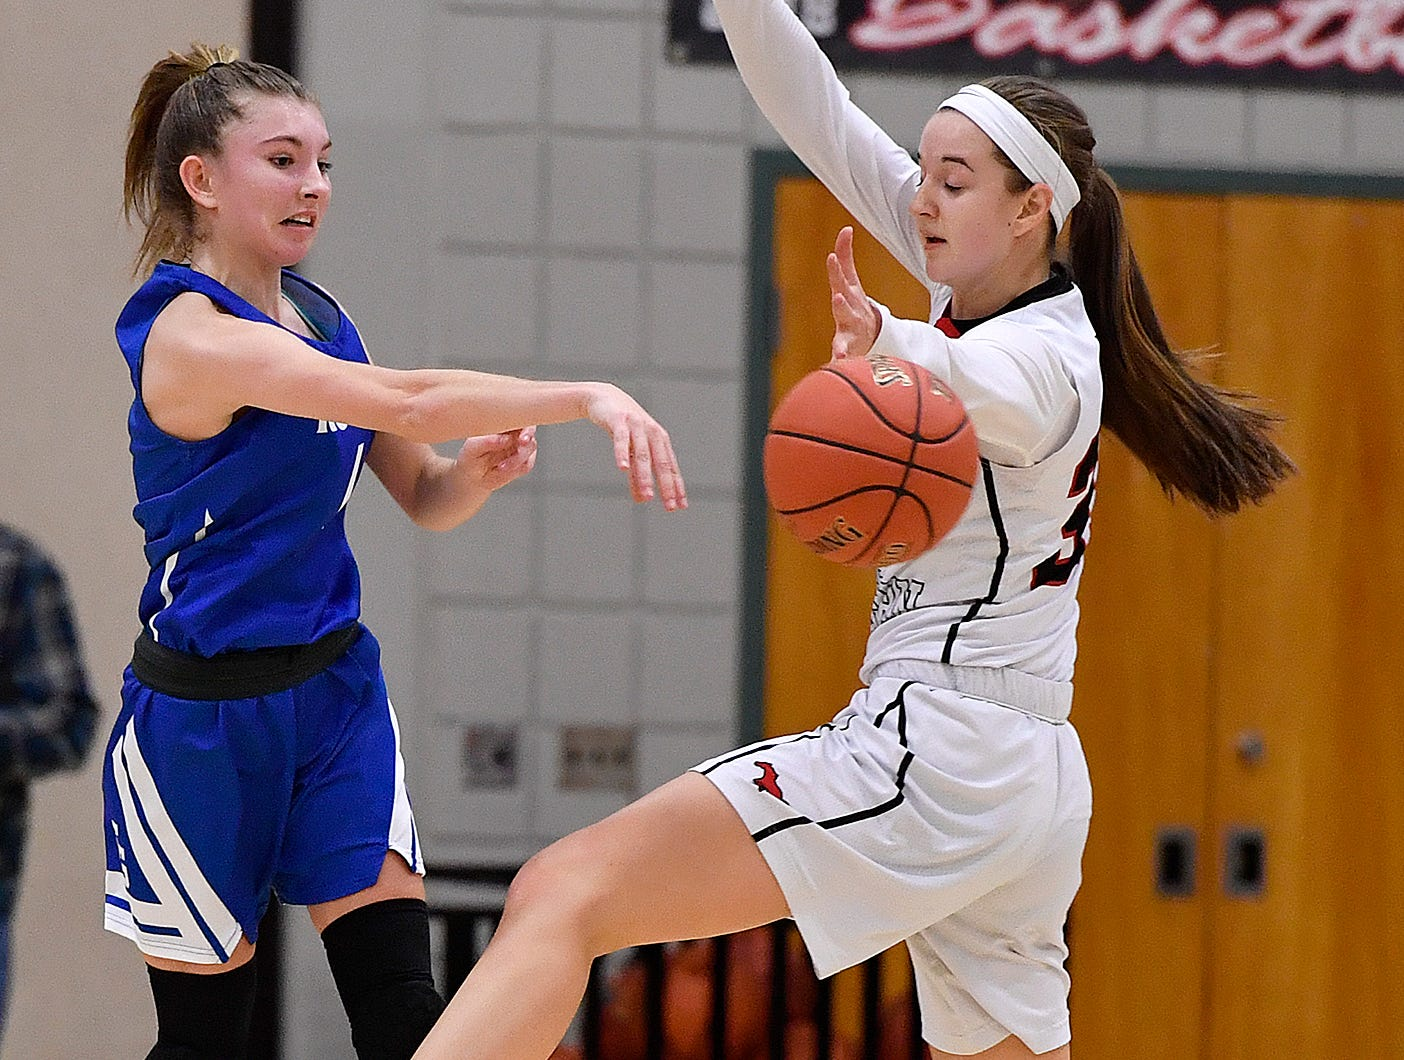 Spring Grove's Addyson Wagman makes a leaping pass around Taylor Geiman of South Western, Monday, Feb. 4, 2019.John A. Pavoncello photo